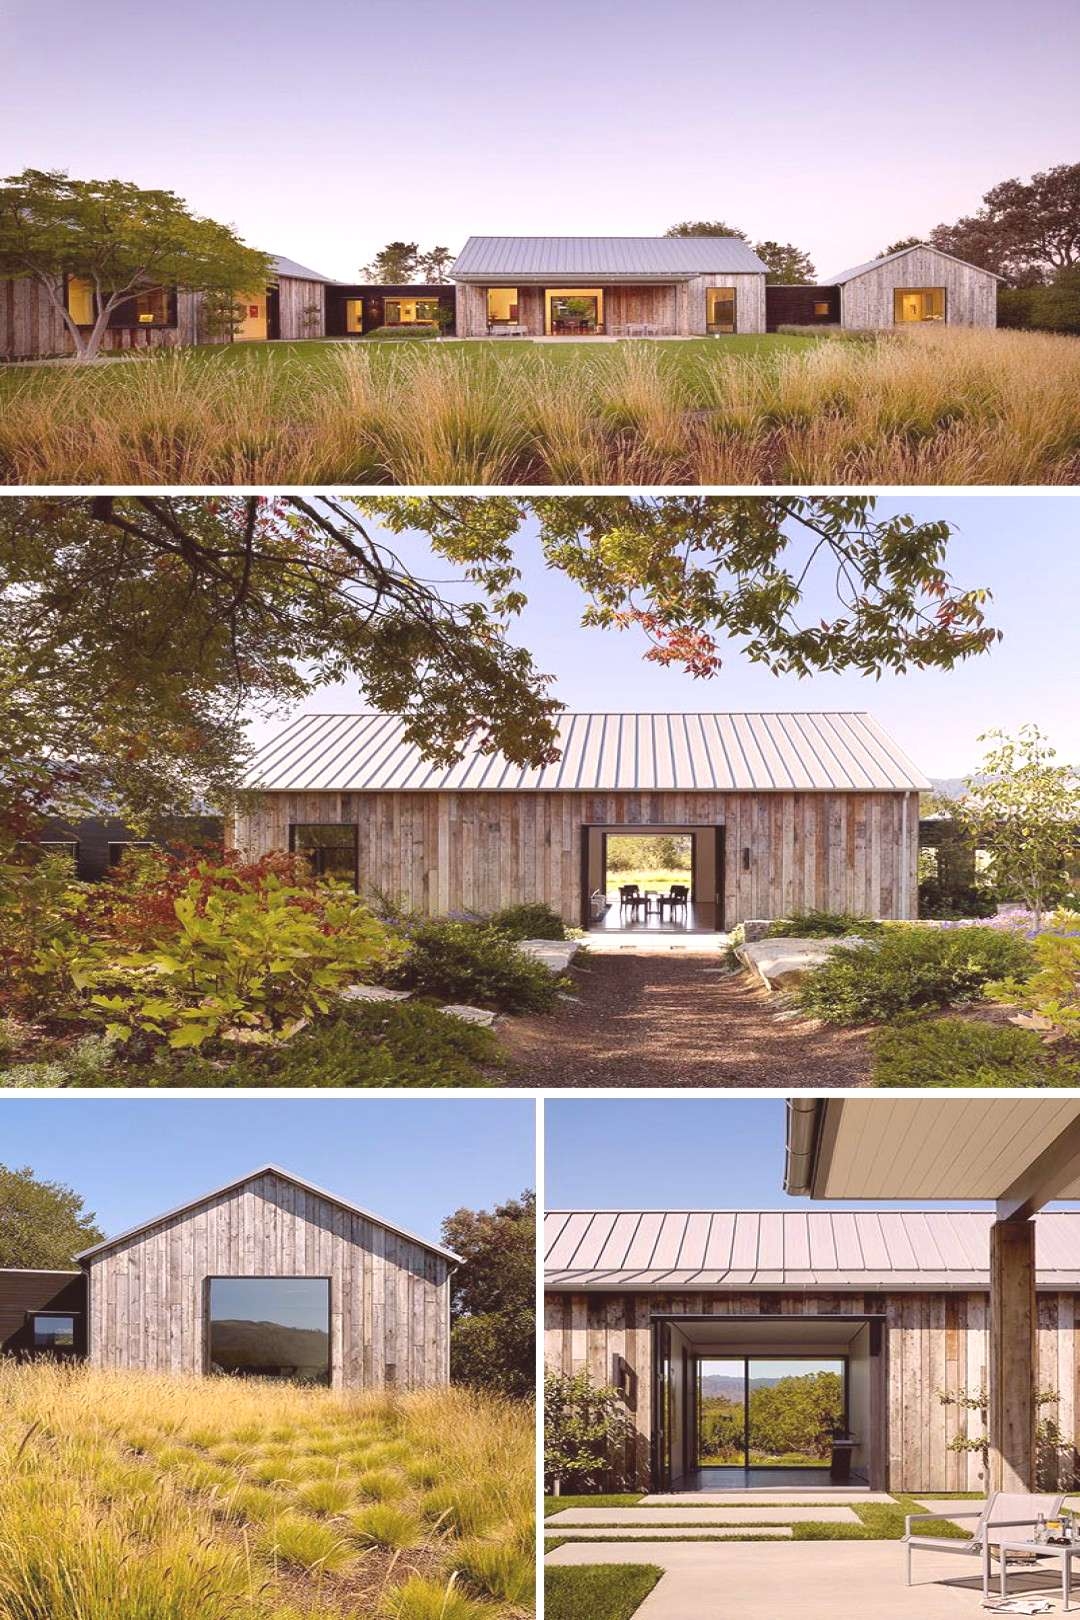 Walker Warner Architects have designed the Portola Valley Barn, a contemporary house in California